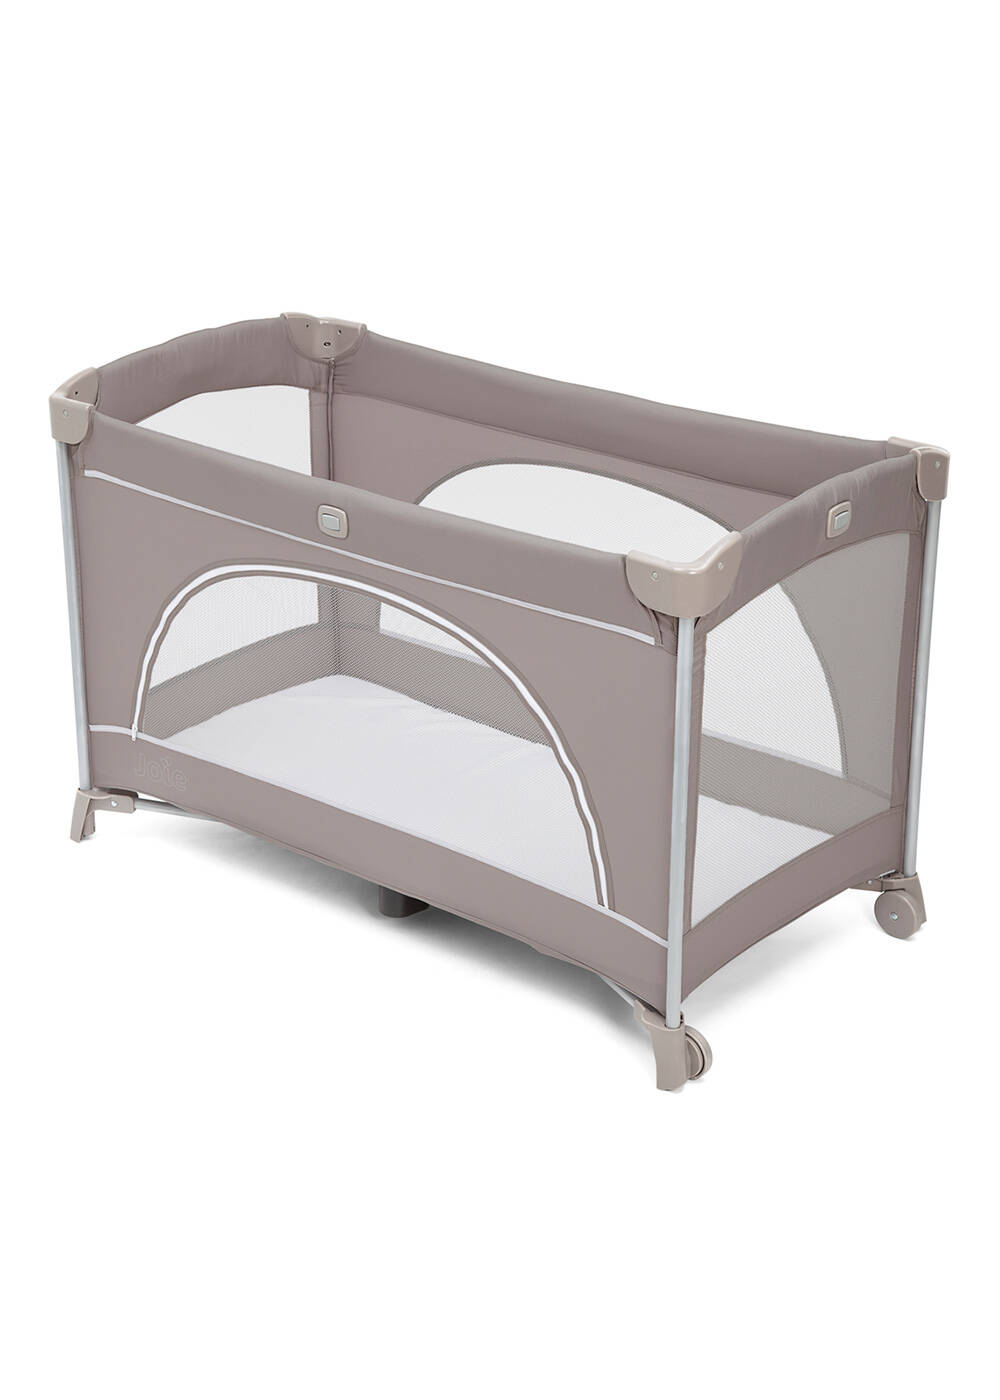 BeeBoo|p1206bastl000_allura120_satelite_leftangle_nobassinet_cs_cc_hr